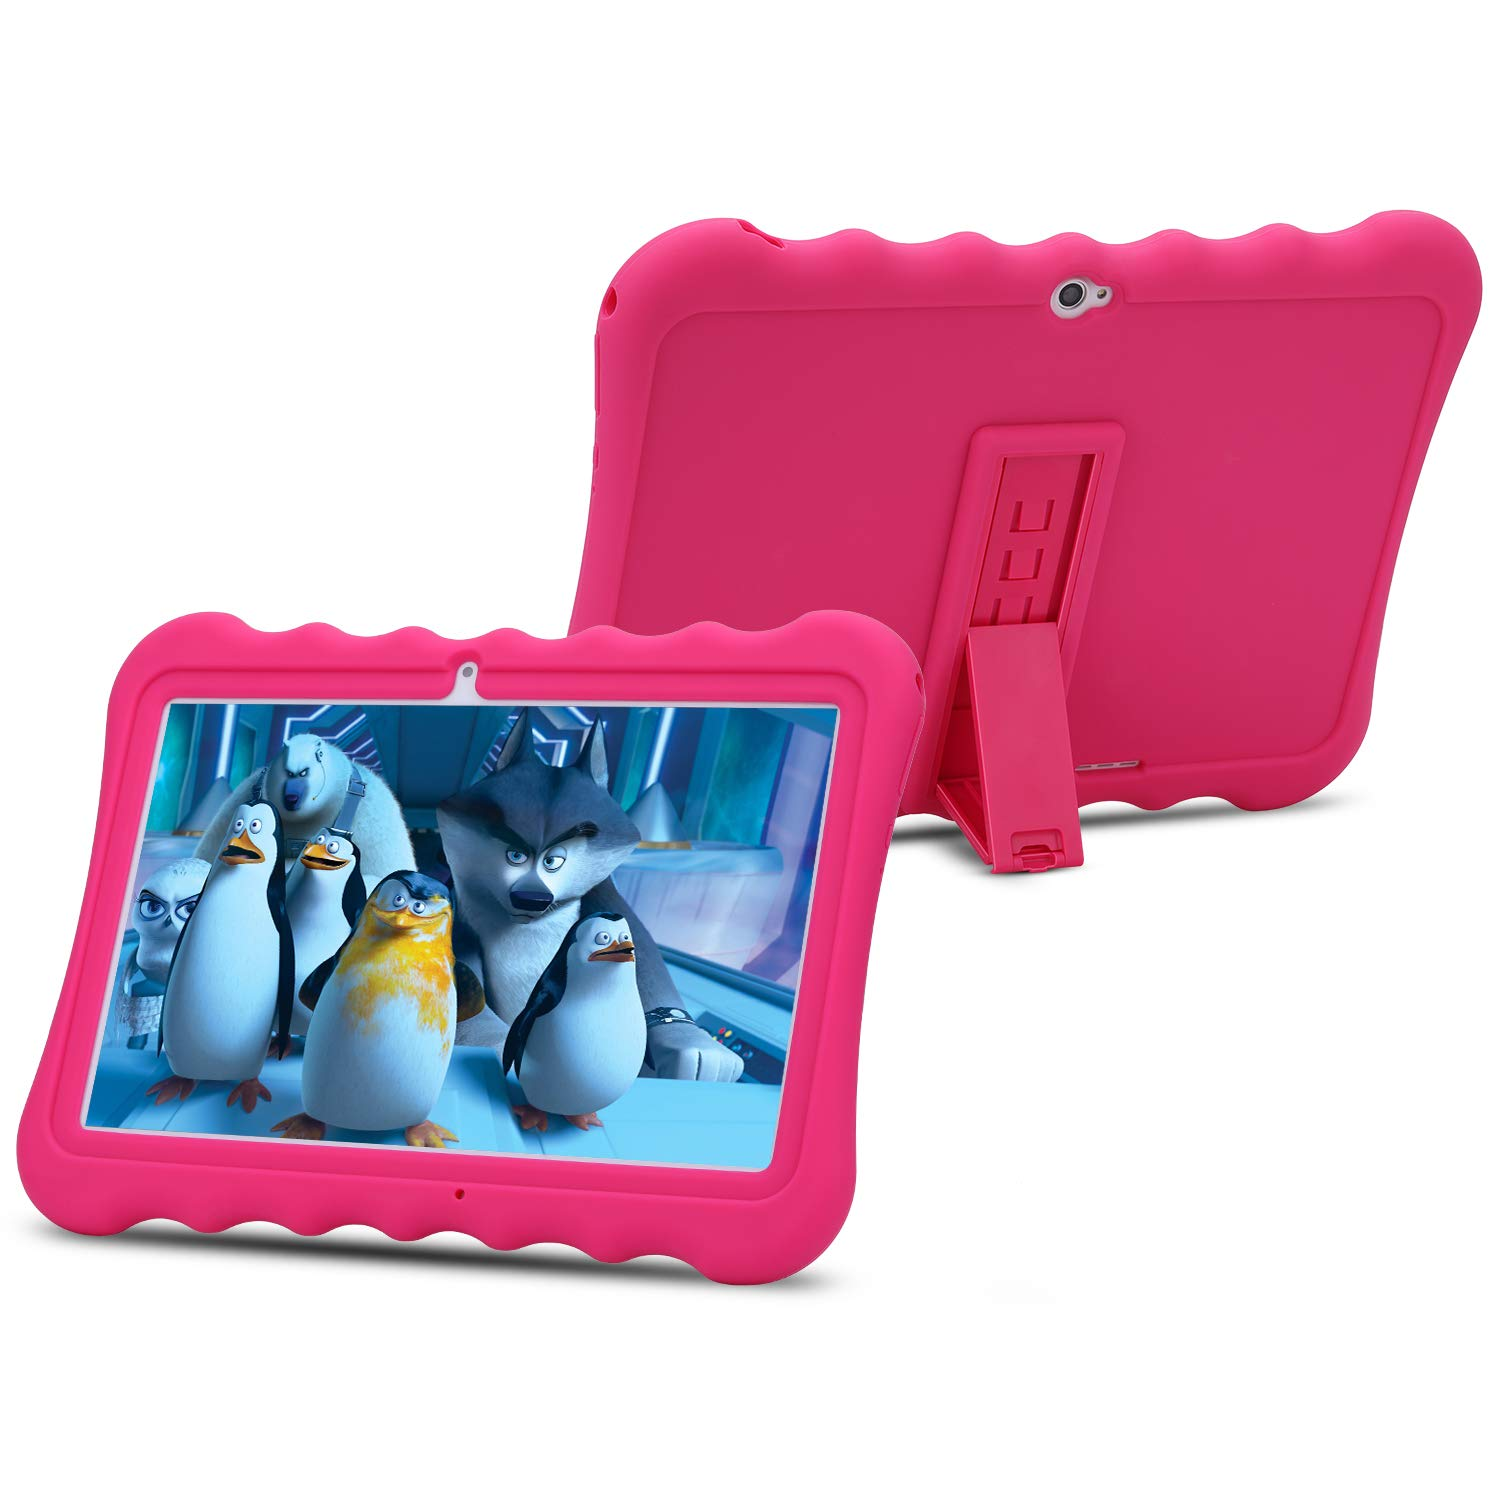 Android Display Tablets Quad Core Kid Proof